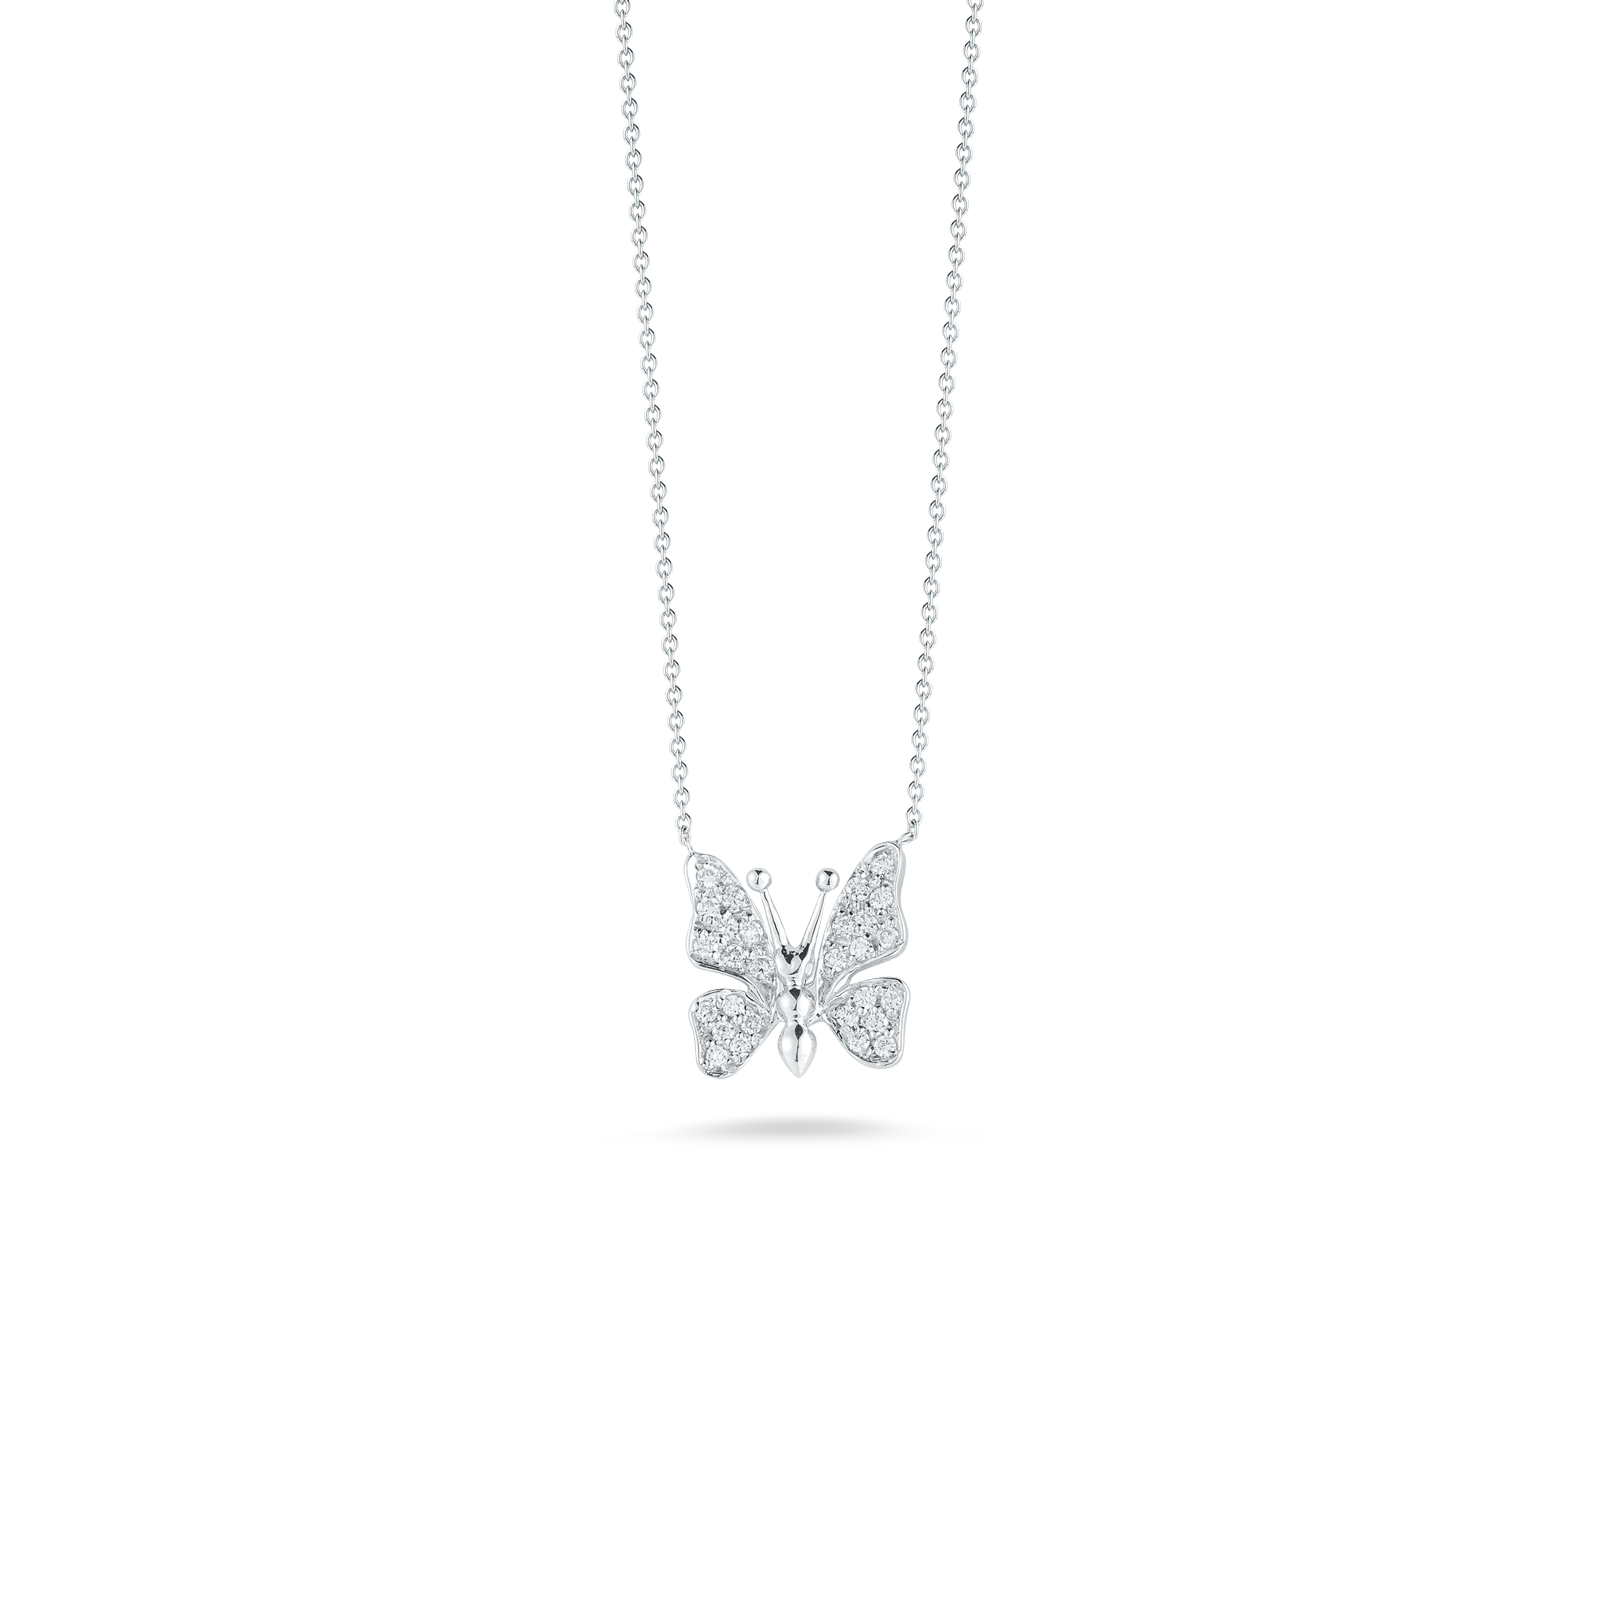 18KT GOLD SMALL SINGLE BUTTERFLY PENDANT WITH DIAMONDS